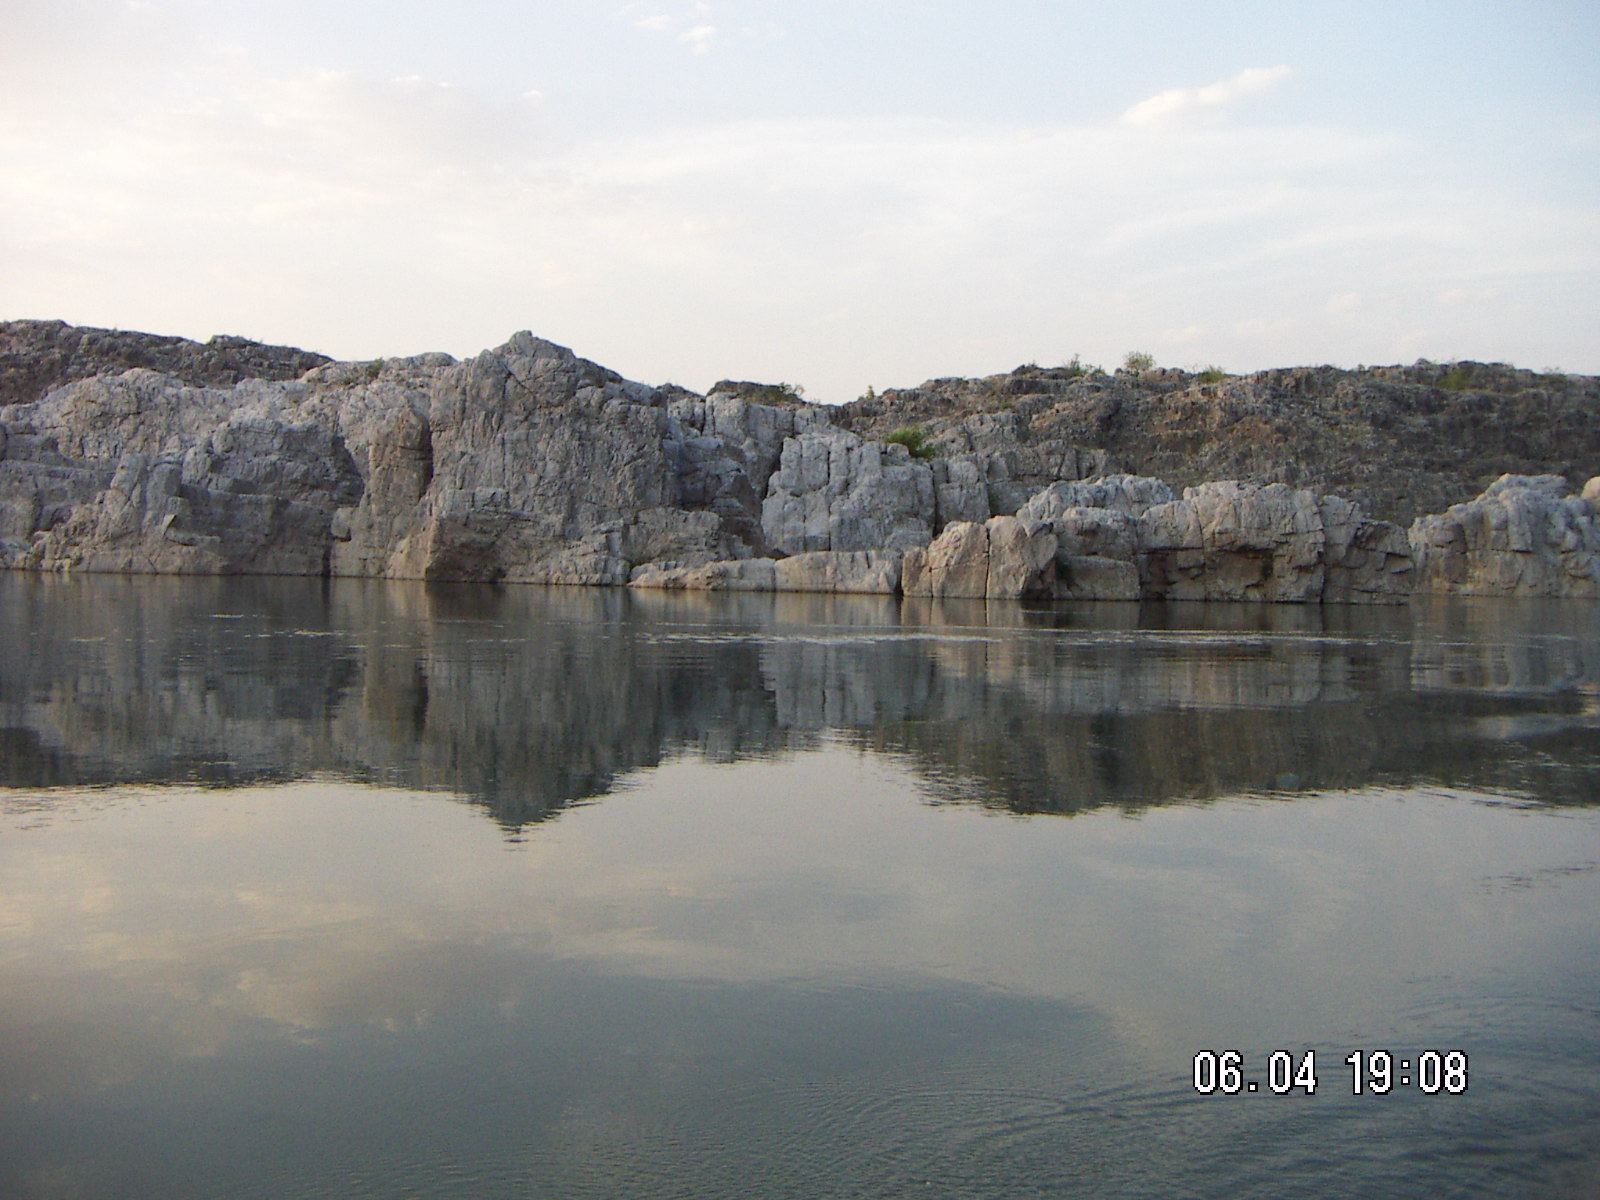 narmada river Get all the latest news and updates on narmada river only on news18com read all news including political news, current affairs and news headlines online on narmada river today.